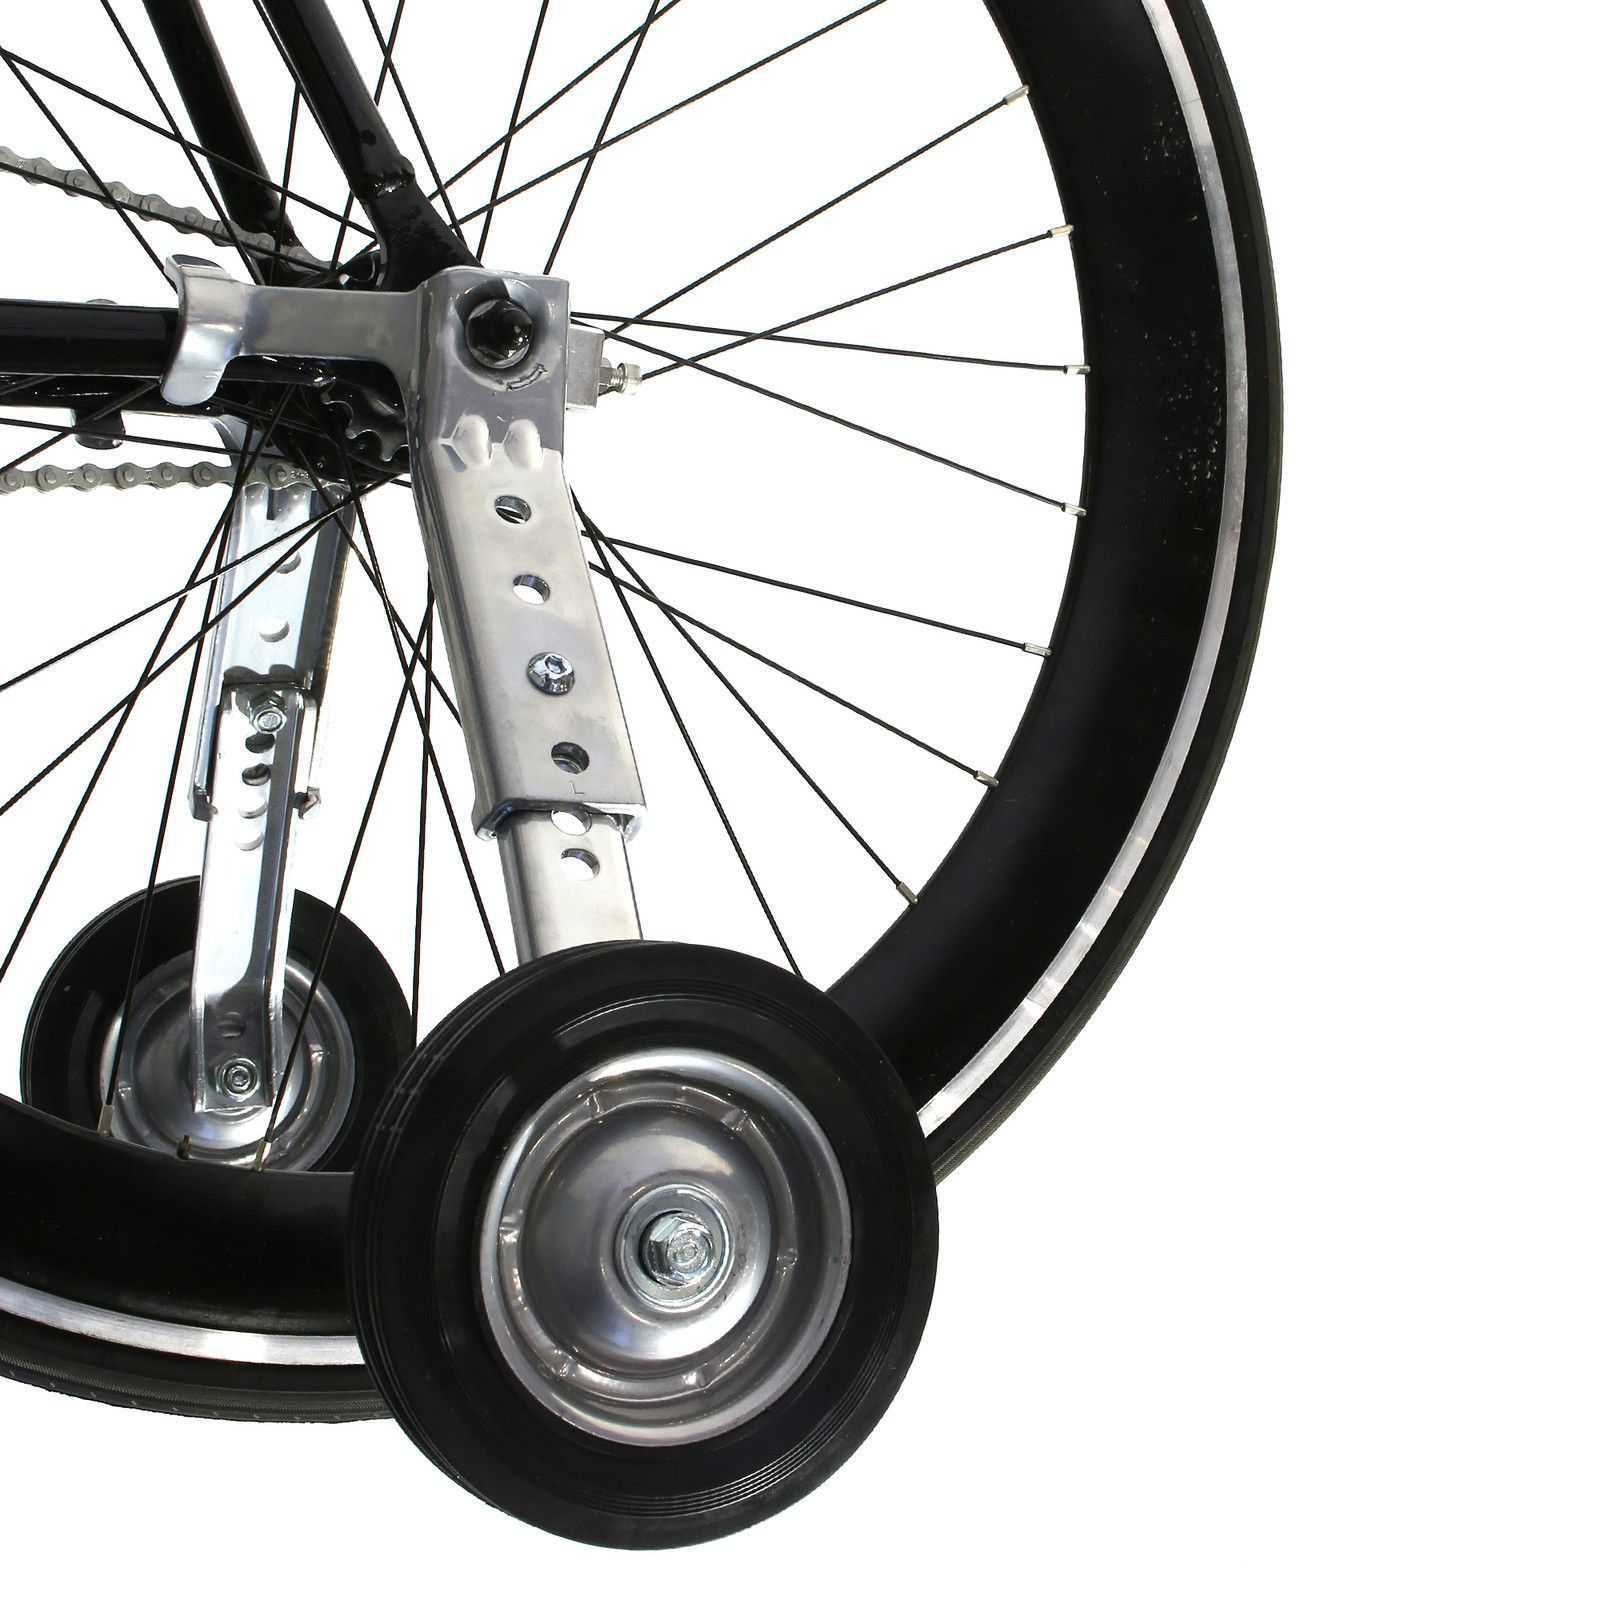 "Cyclingdeal Adjustable Adult Bicycle Bike Training Wheels Fits 20"" to 26"""